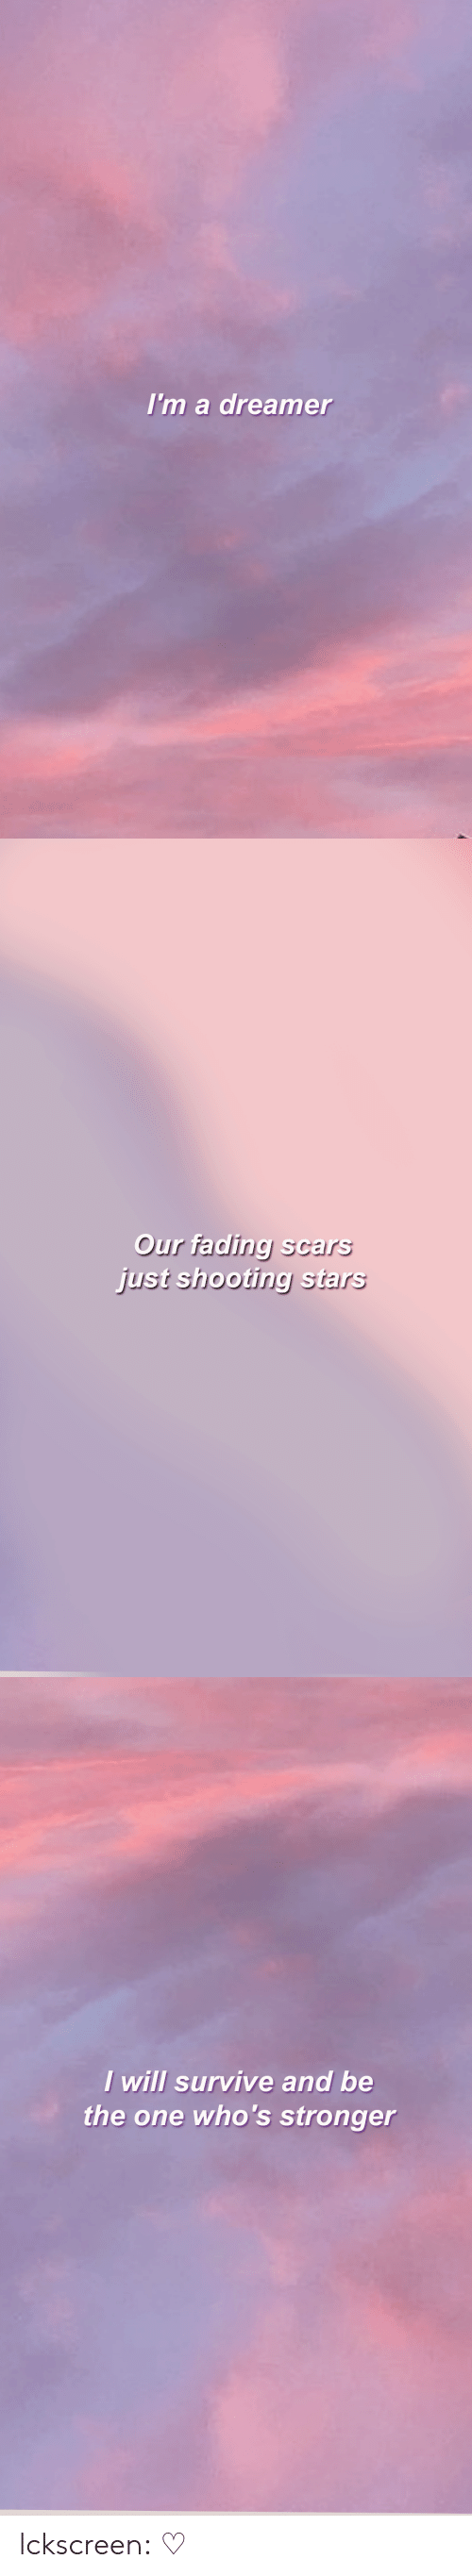 shooting stars: Im a dreamer   Our fading scars  just shooting stars   I will survive and be  the one who's stronger lckscreen:   ♡